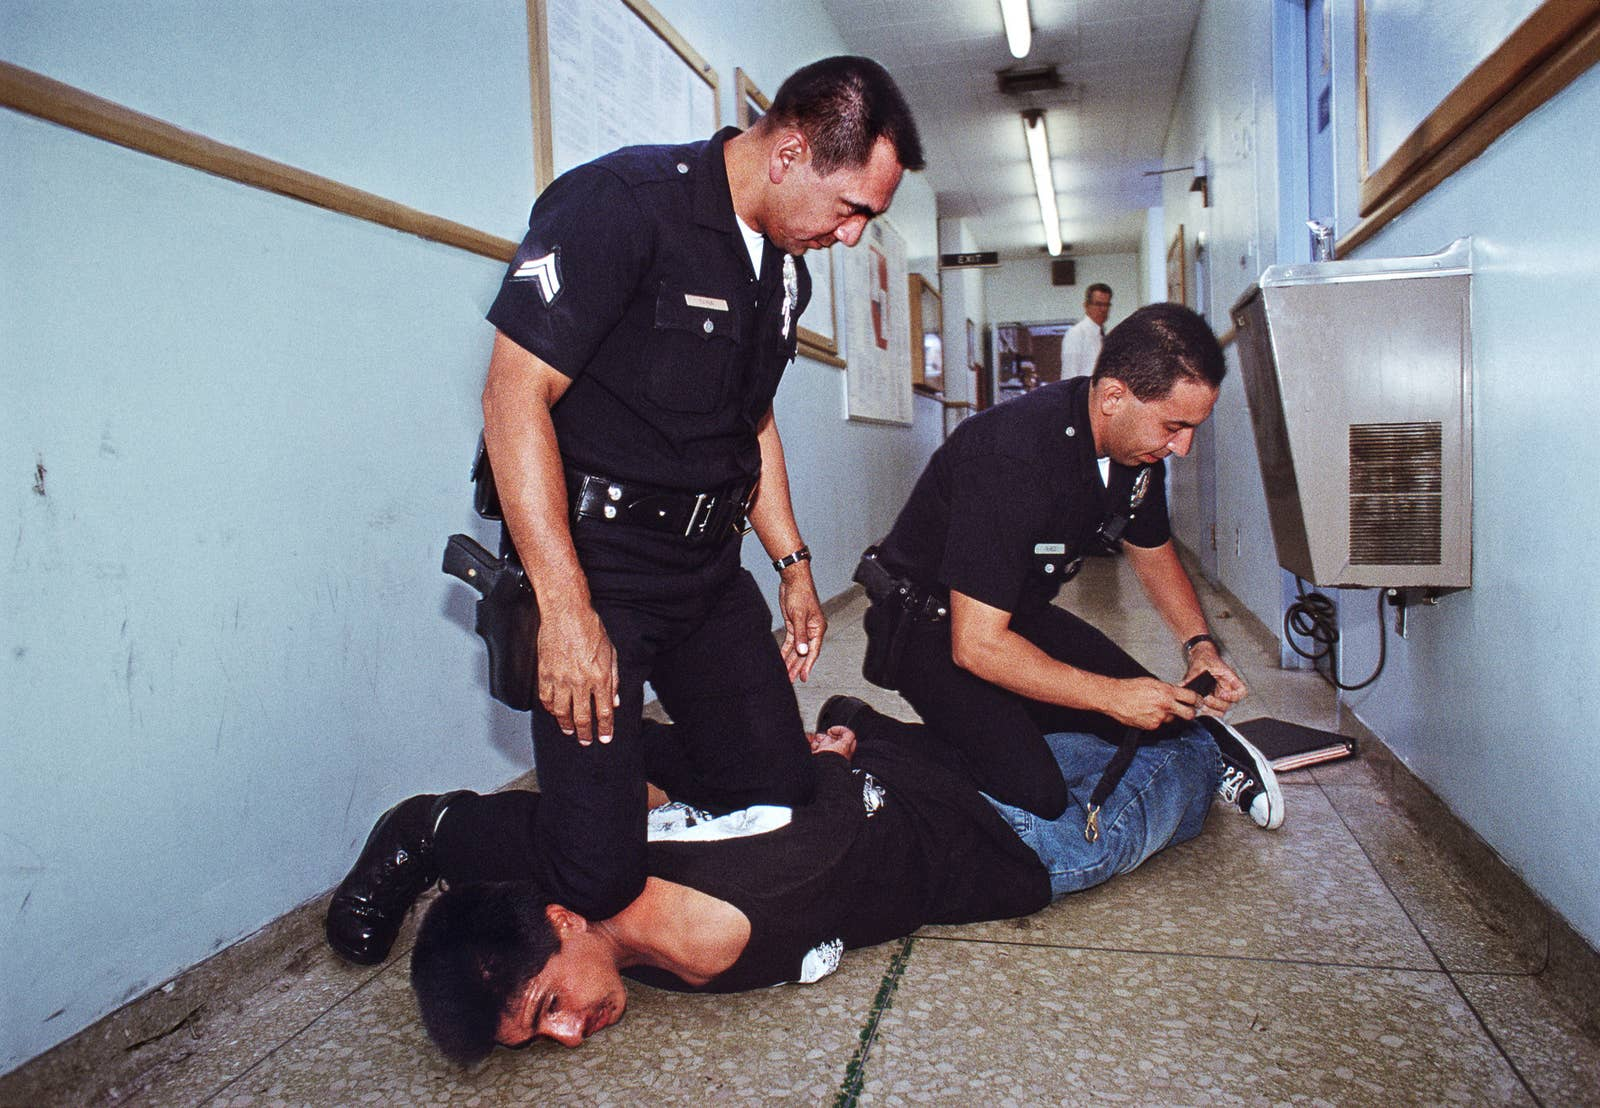 Two cops kneel on a guy in a hallway while adjusting some kind of strap